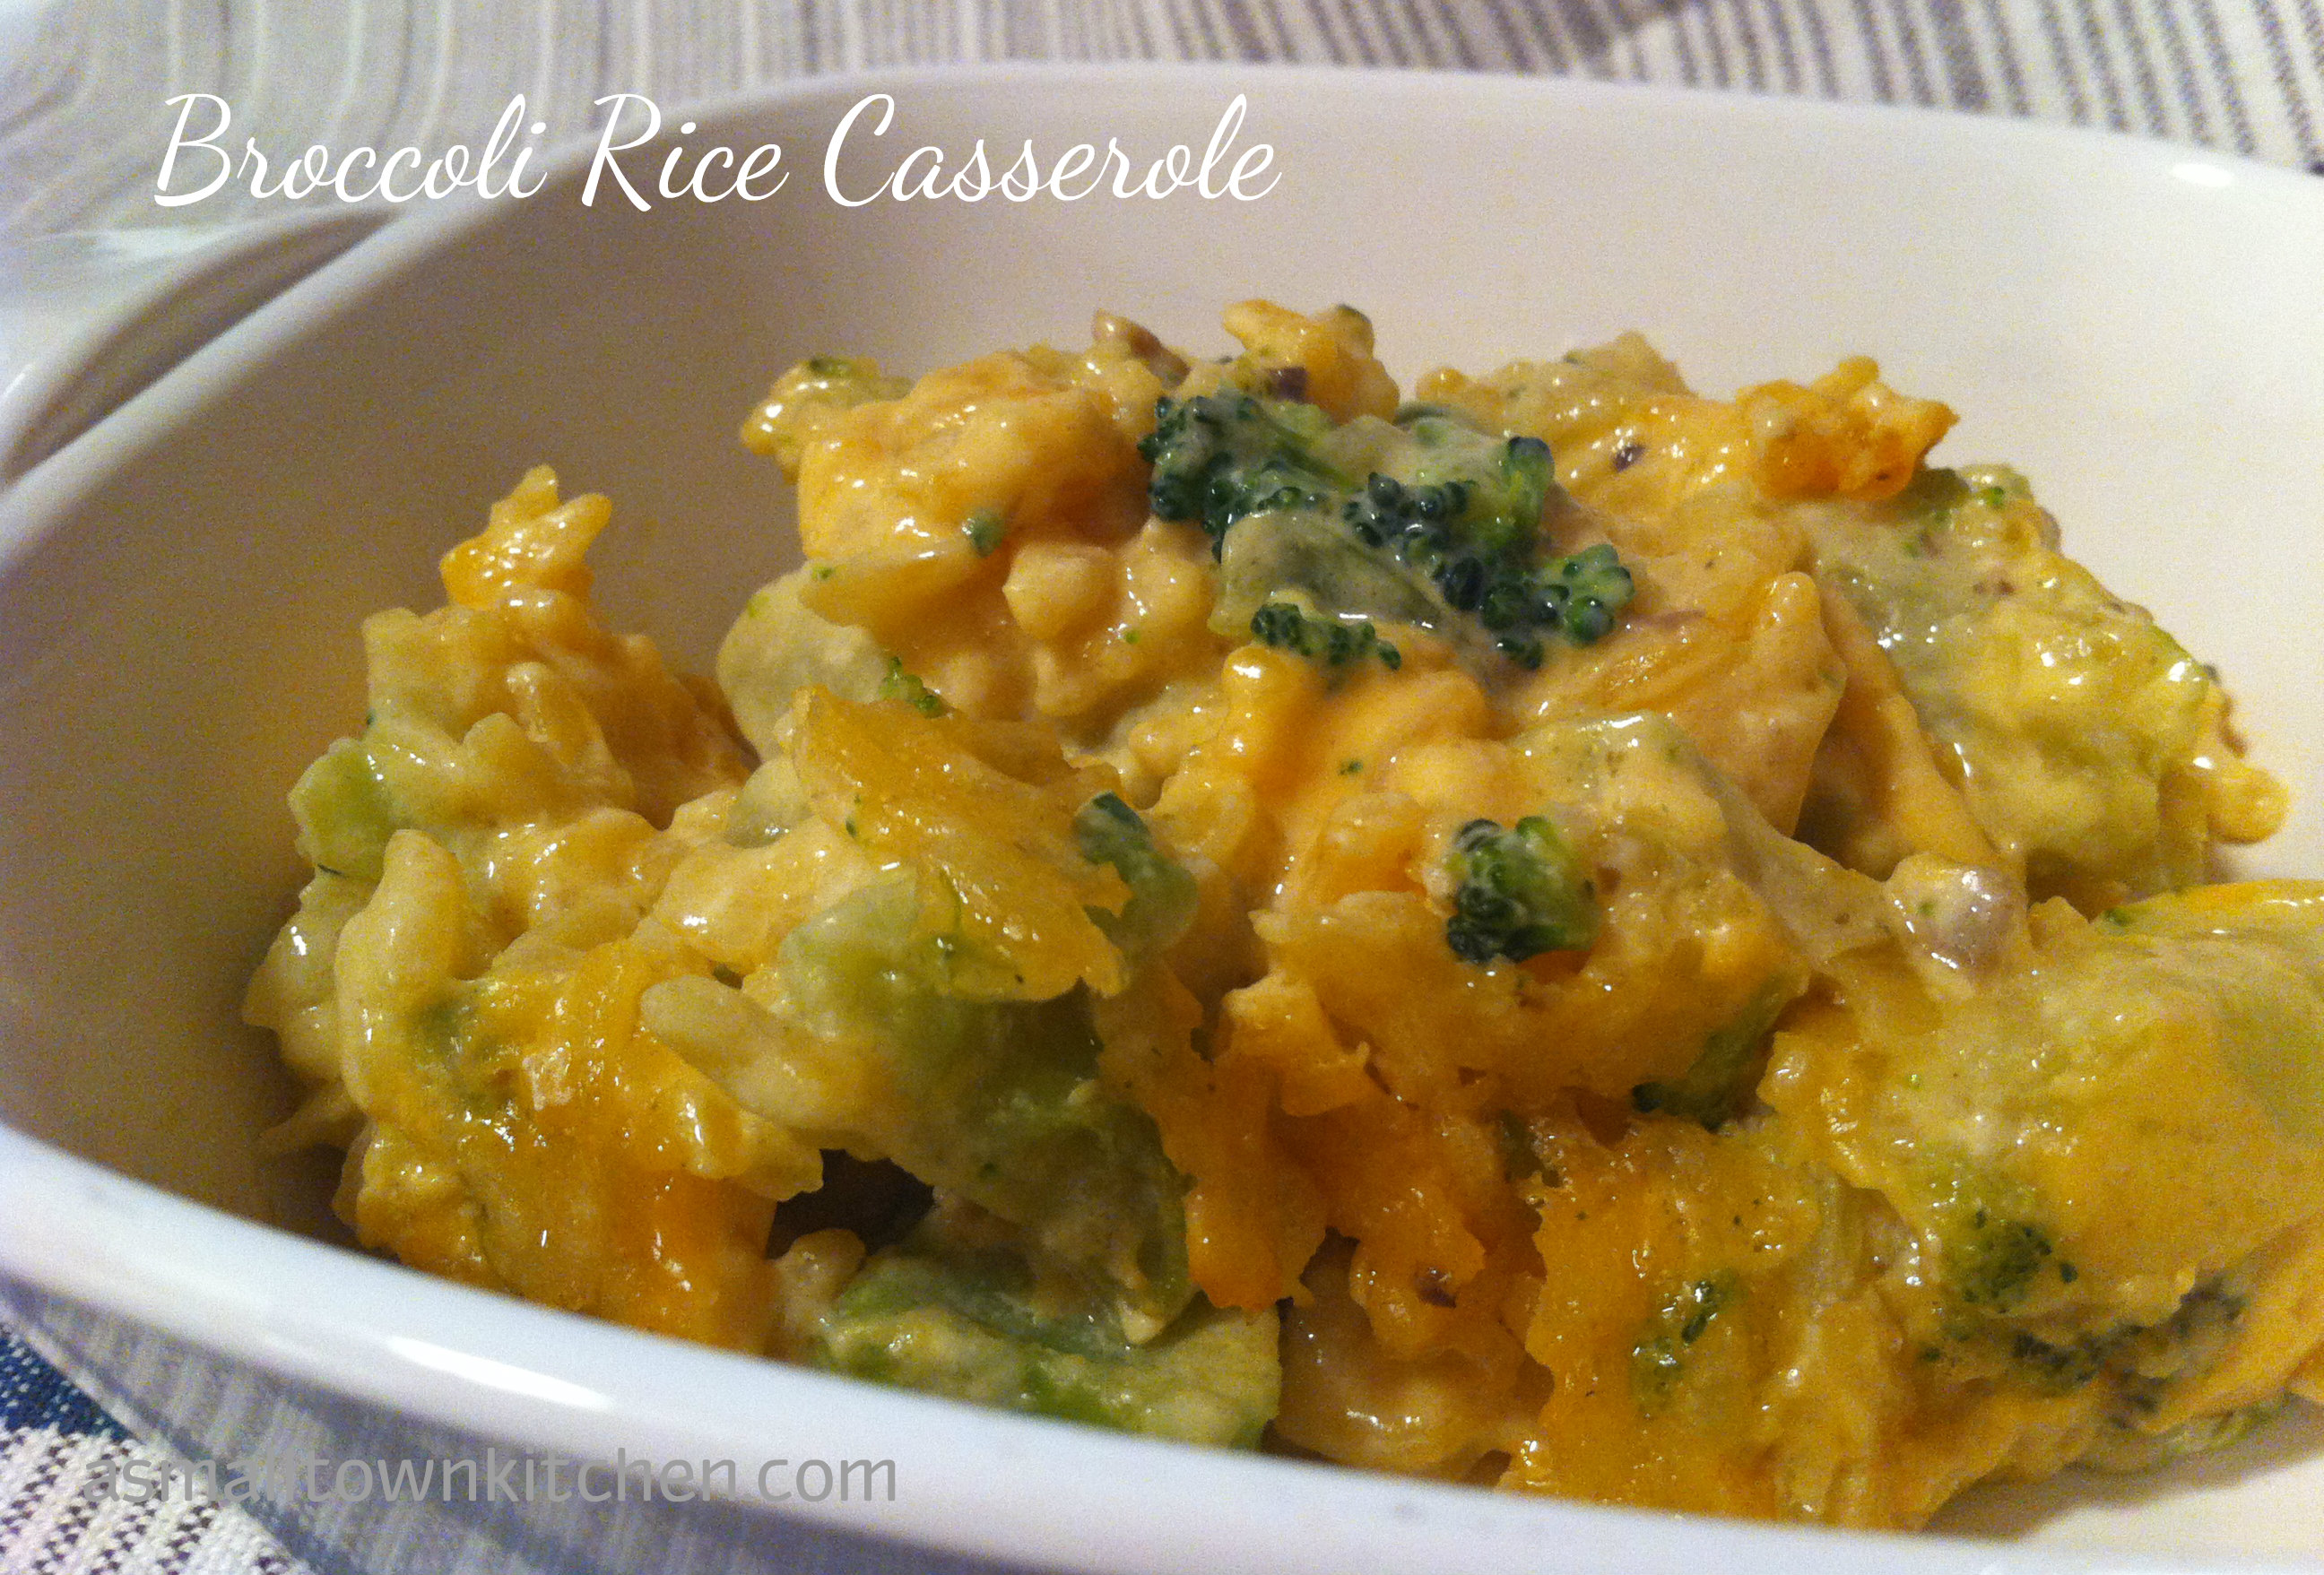 Broccoli Rice Casserole | A Small Town Kitchen